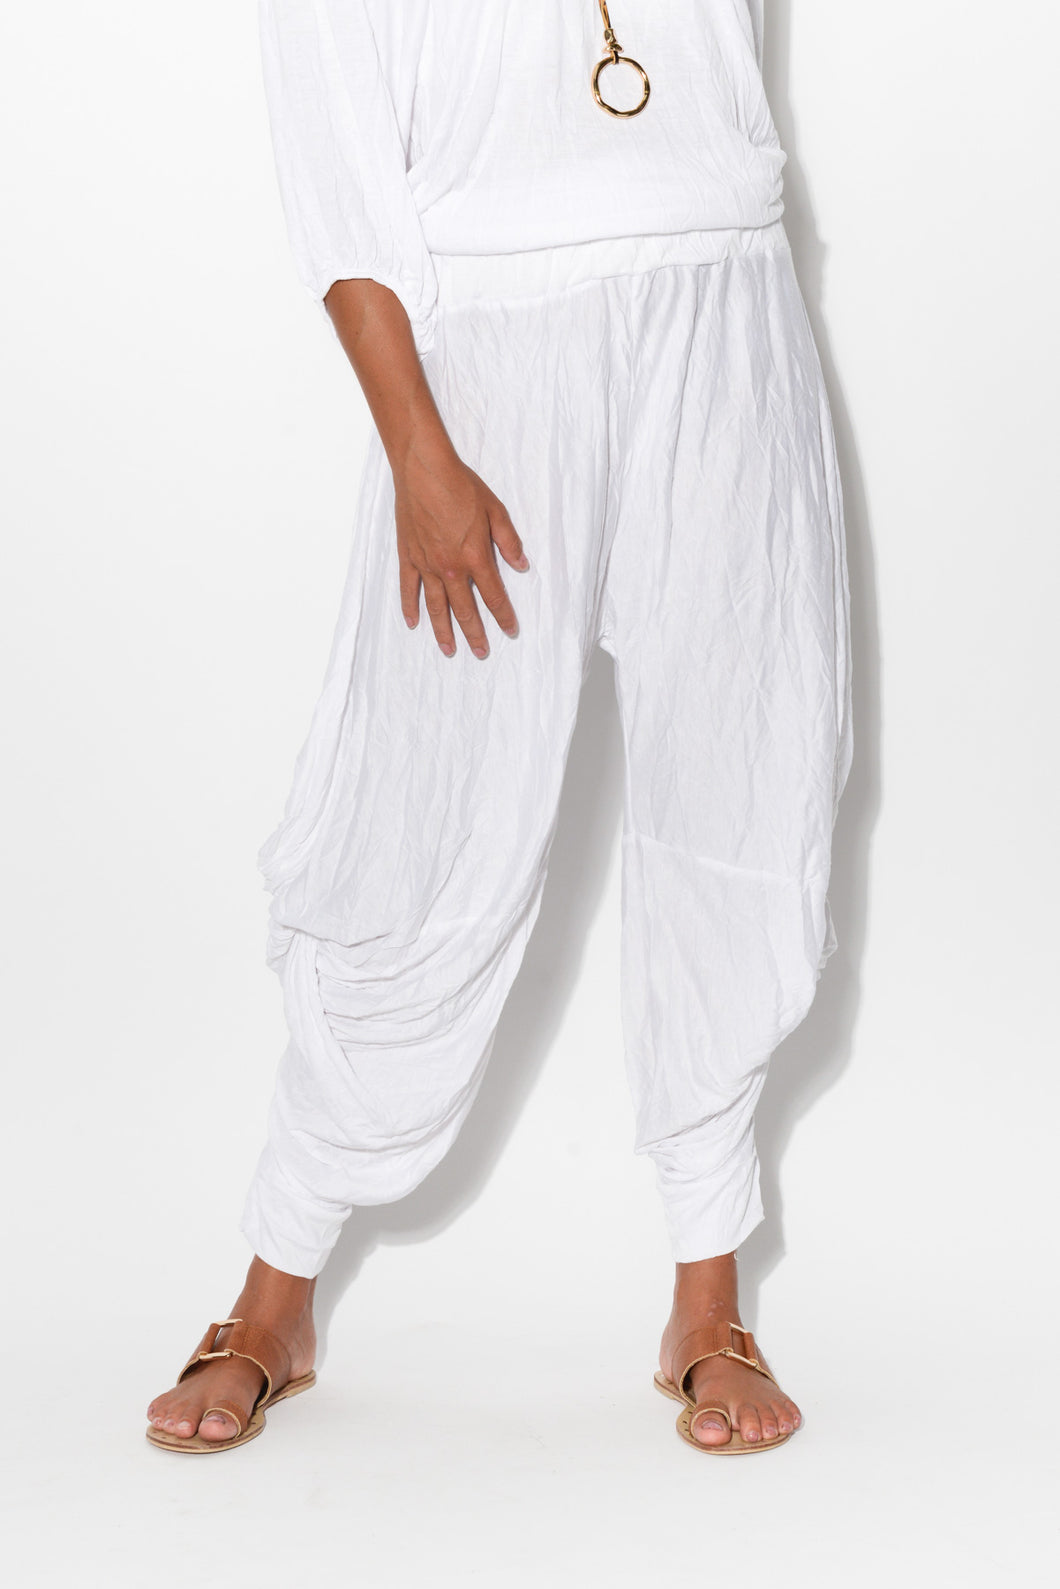 White Crinkle Cotton Cloud Pants - Blue Bungalow